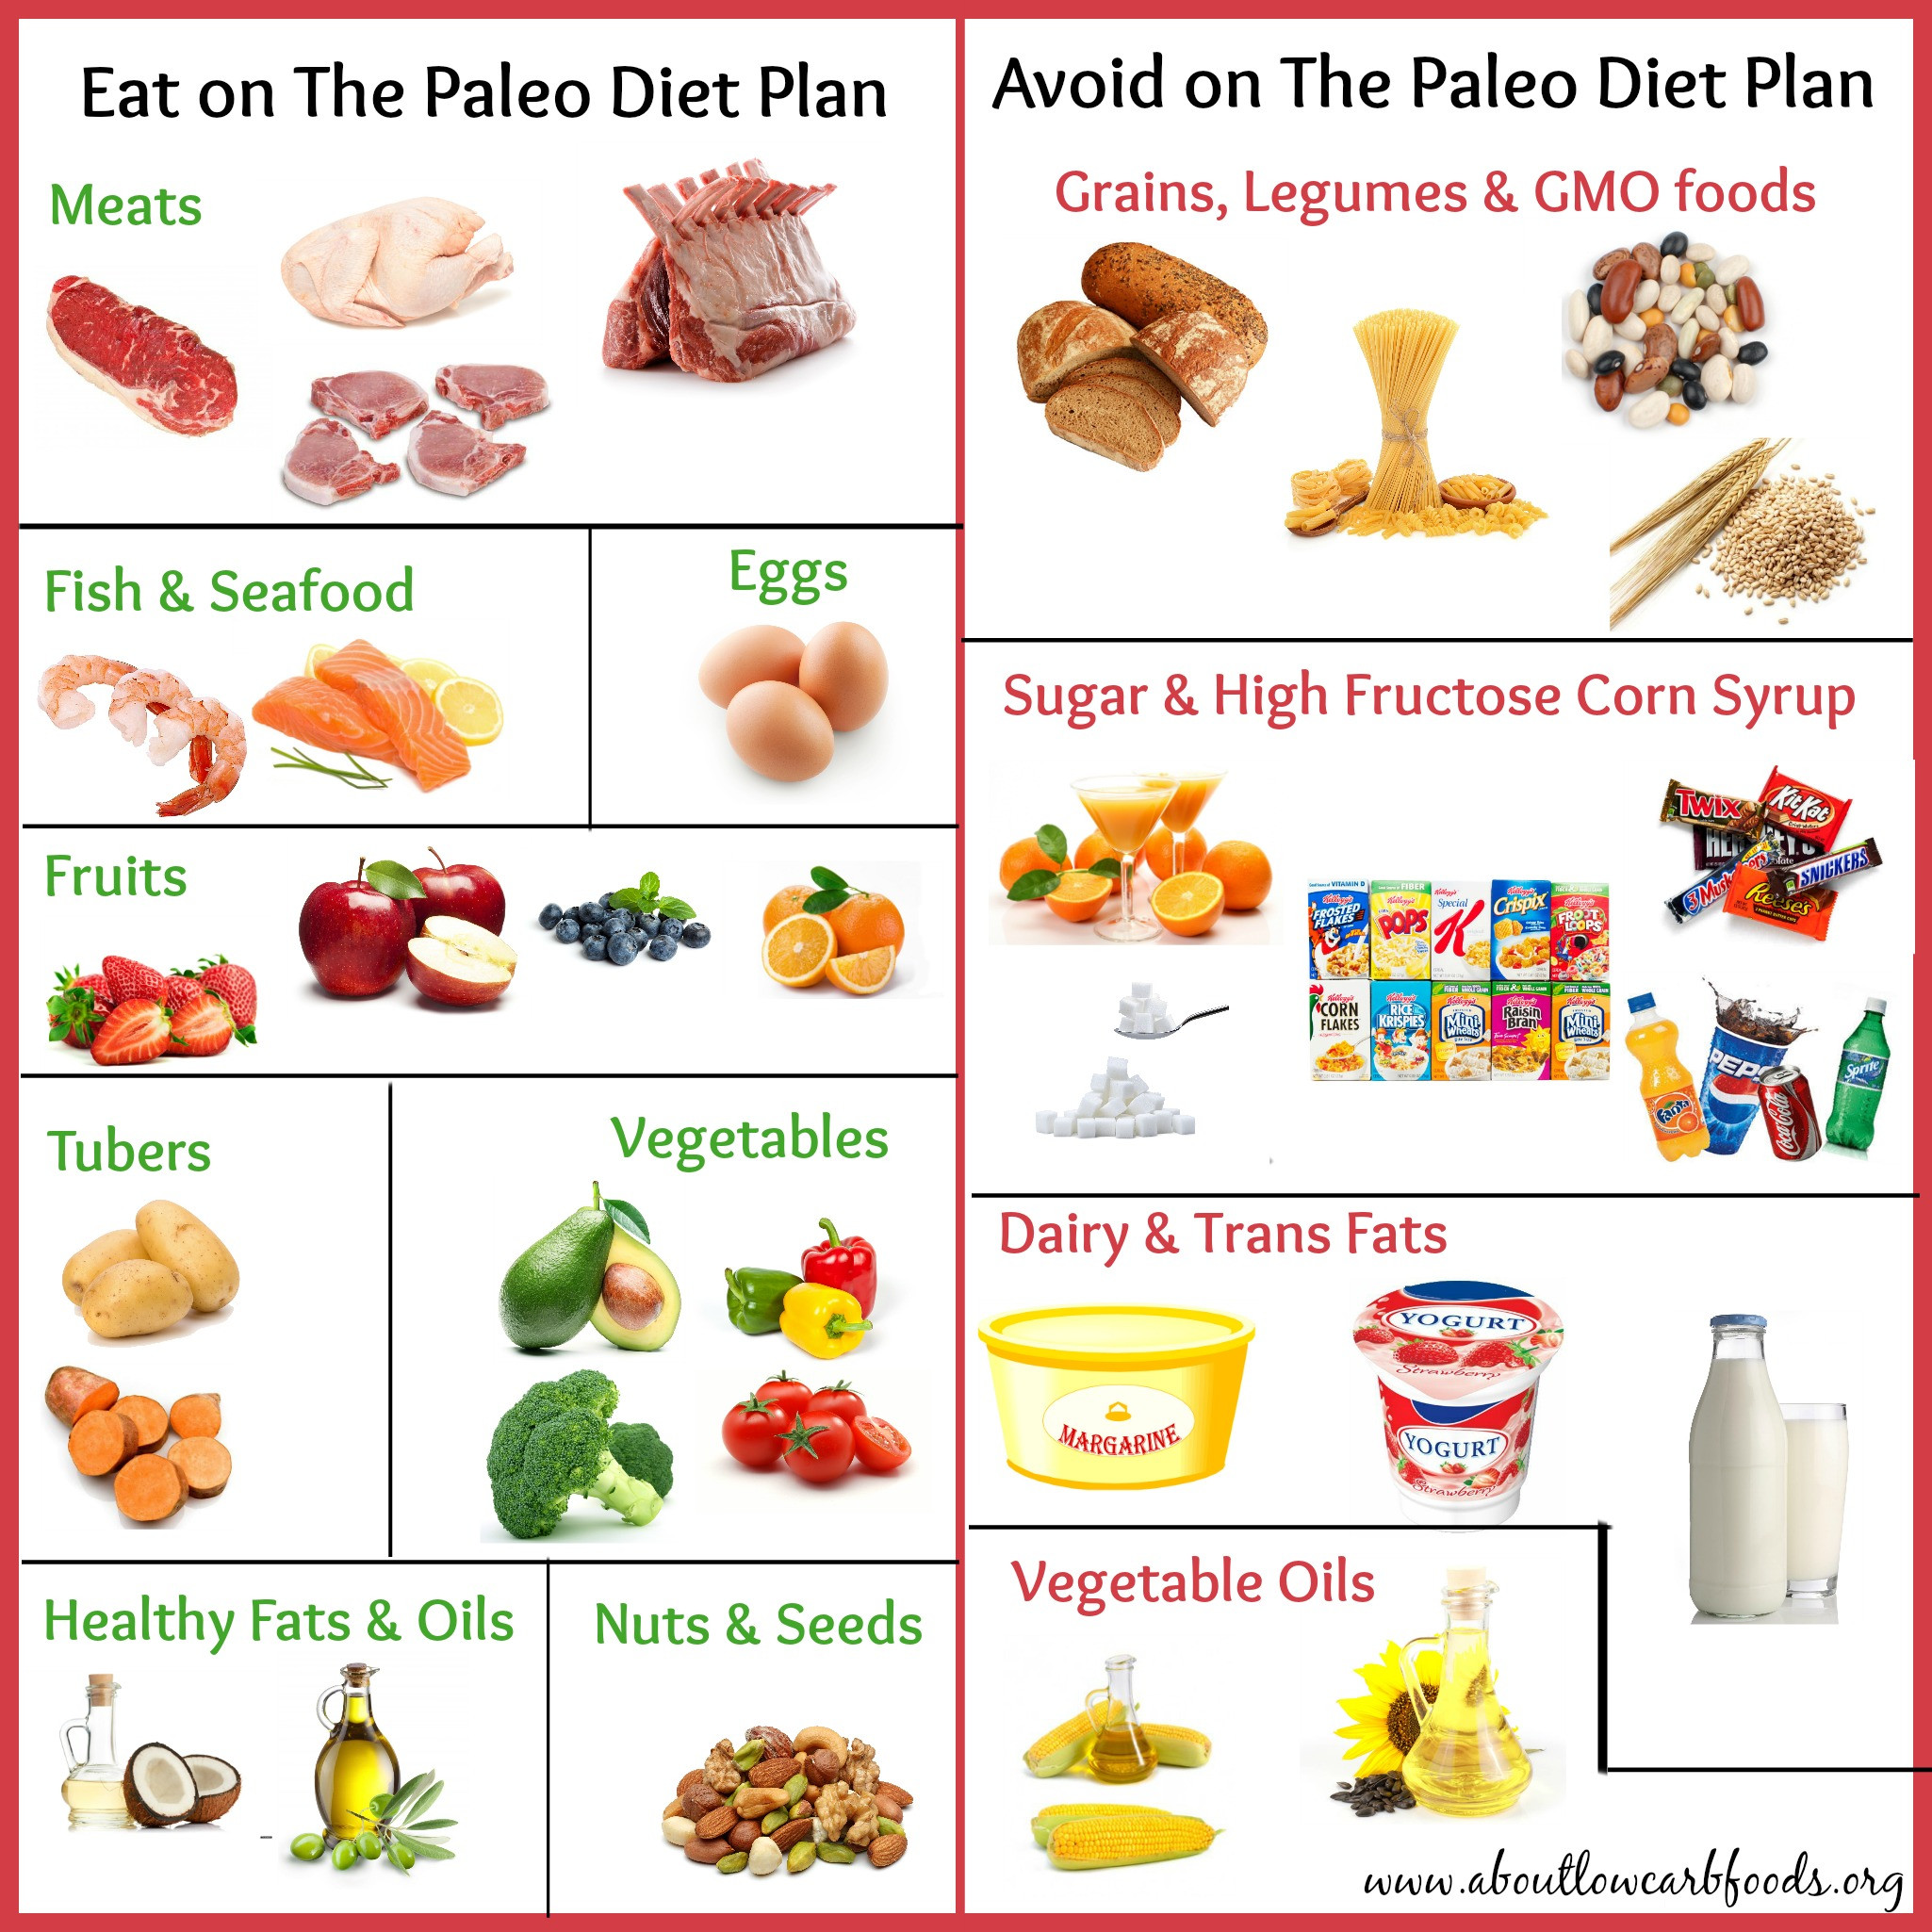 Paleo Diet Unhealthy  A Paleo Diet Plan That Can Save Your Life About Low Carb